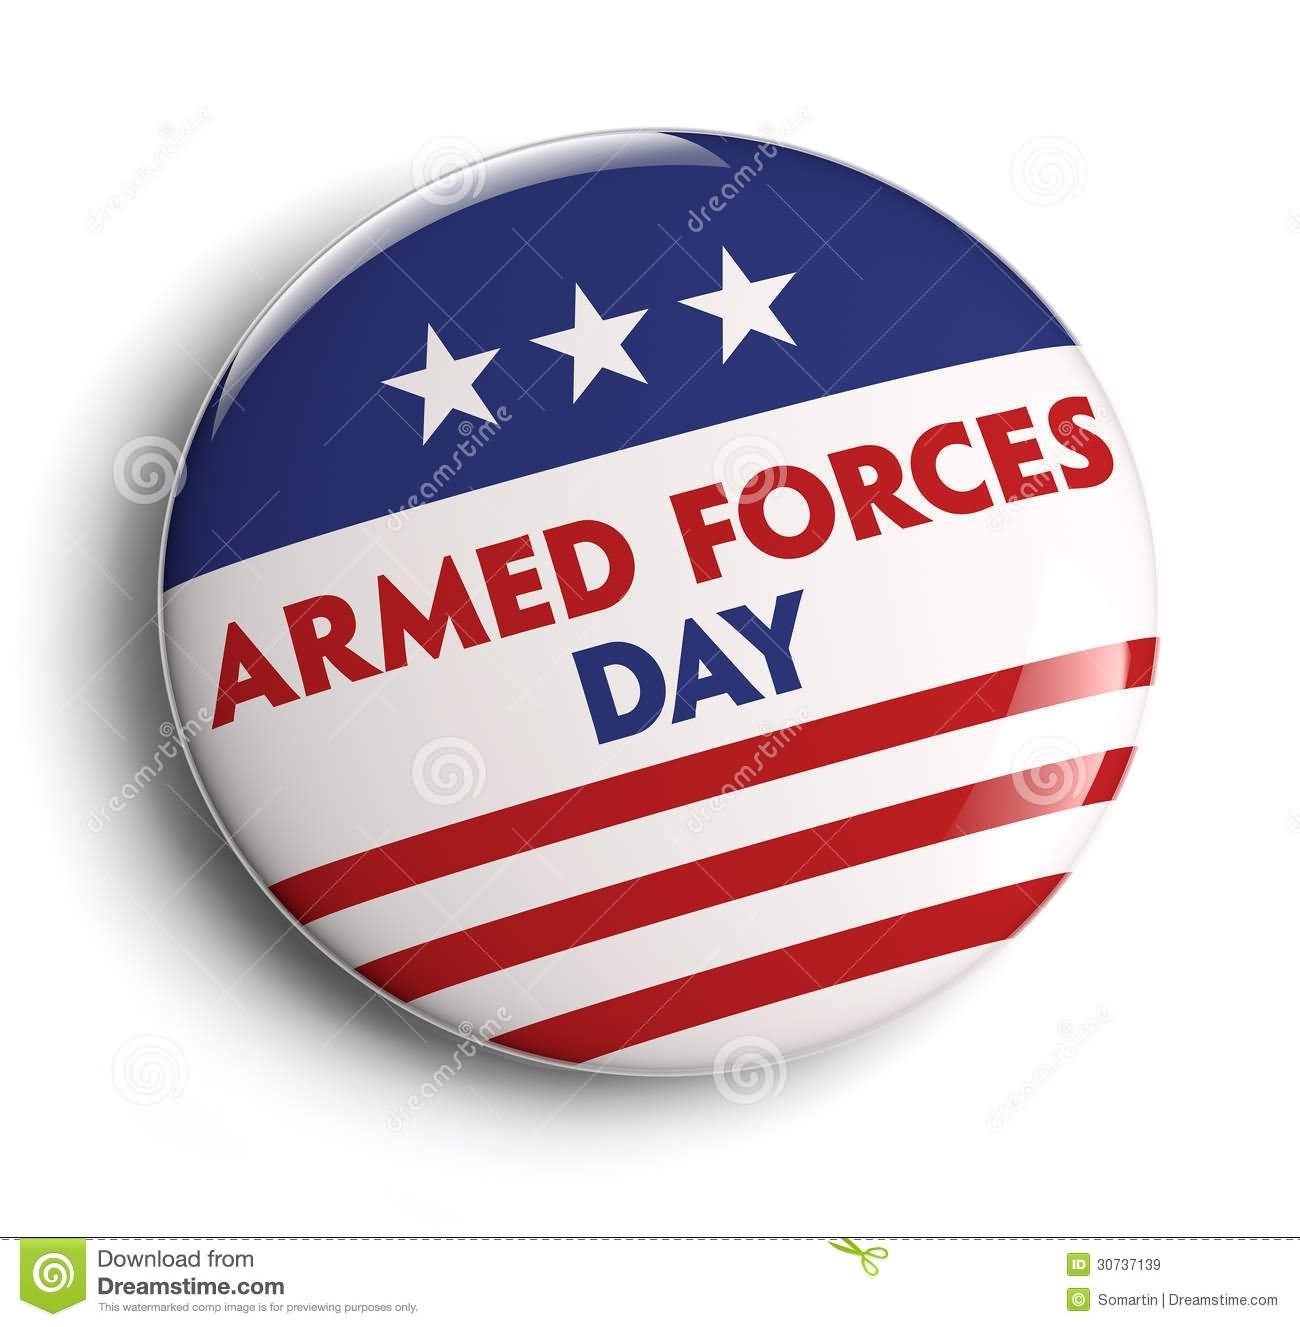 armed forces day - photo #12